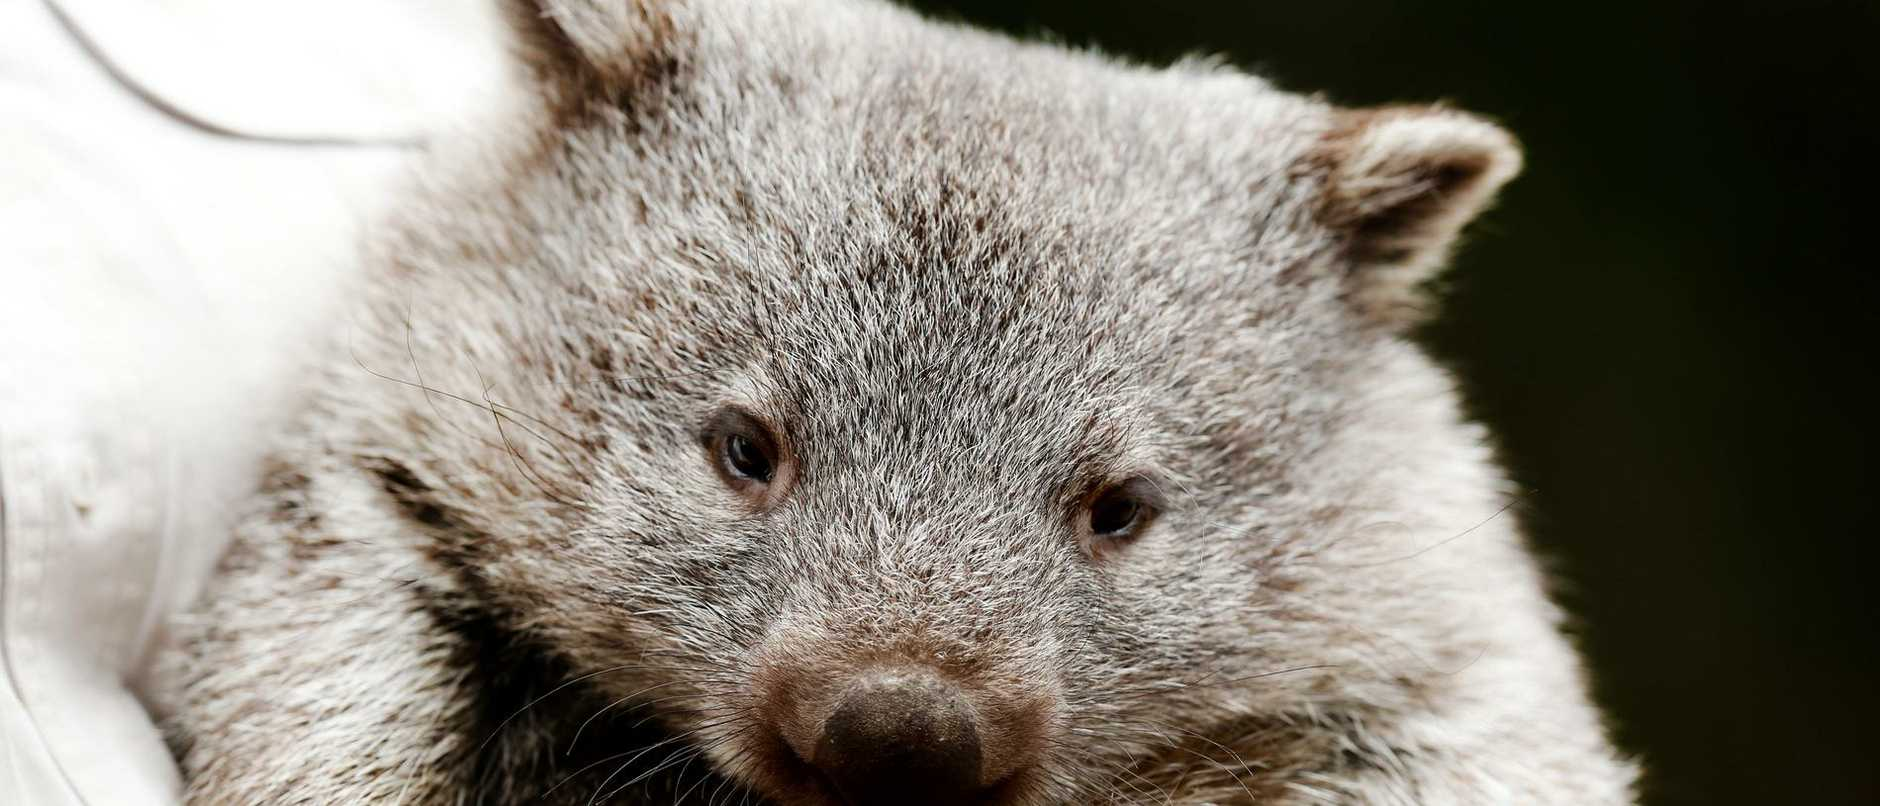 The decision to cull was also criticised by local Indigenous tourism operator Quenten Agius, who said people travelled long distances to see the colony.